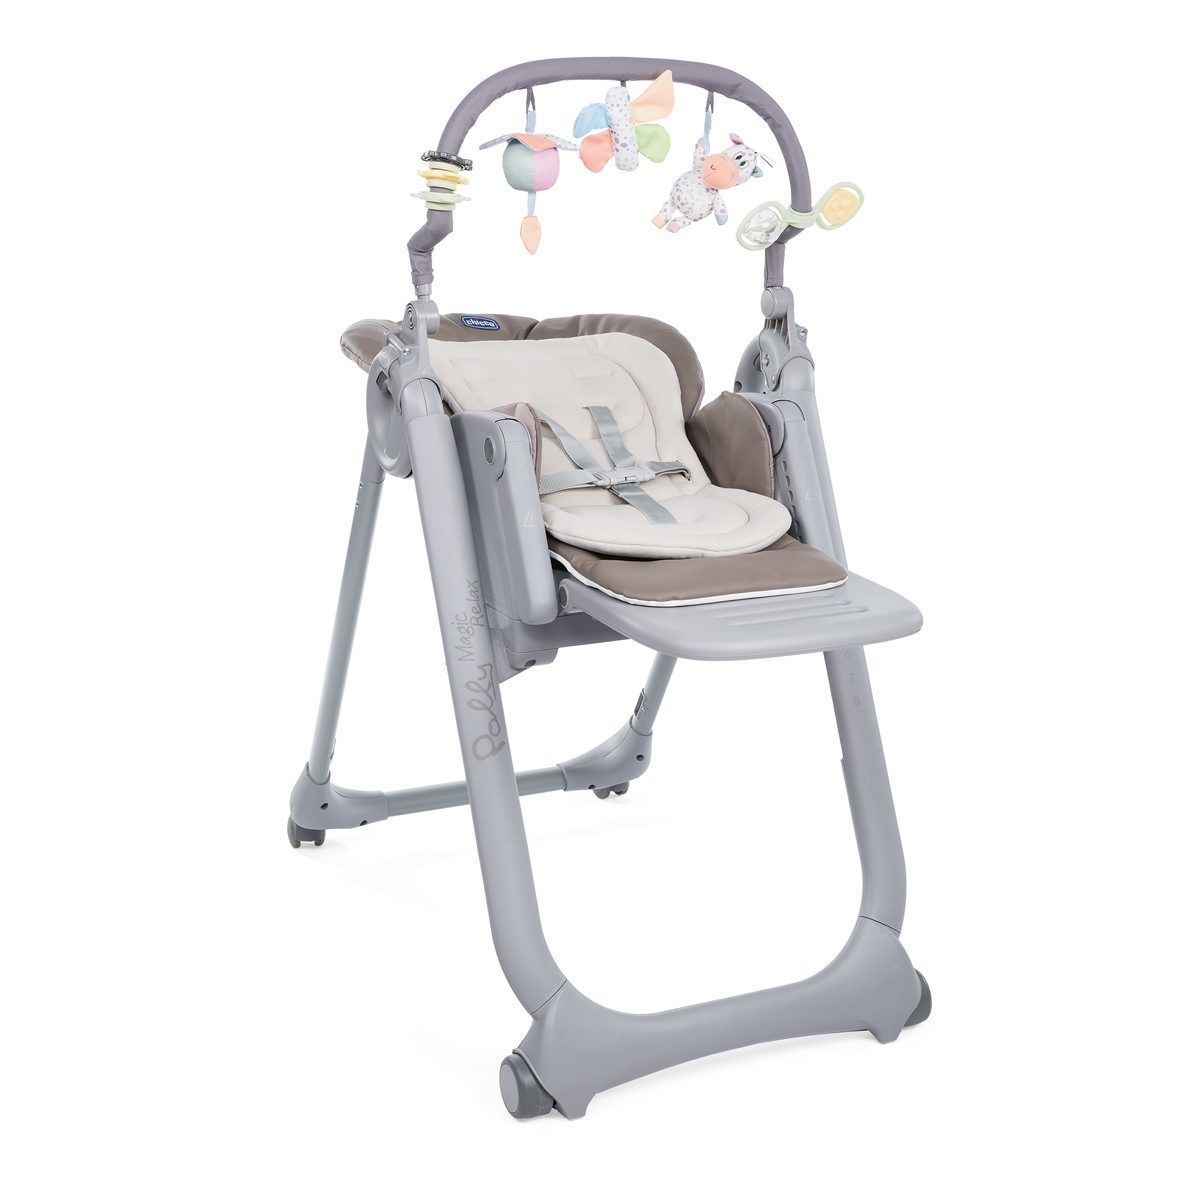 Chaise Haute Bebe Polly Magic Relax Chaises Hautes Chicco Fr